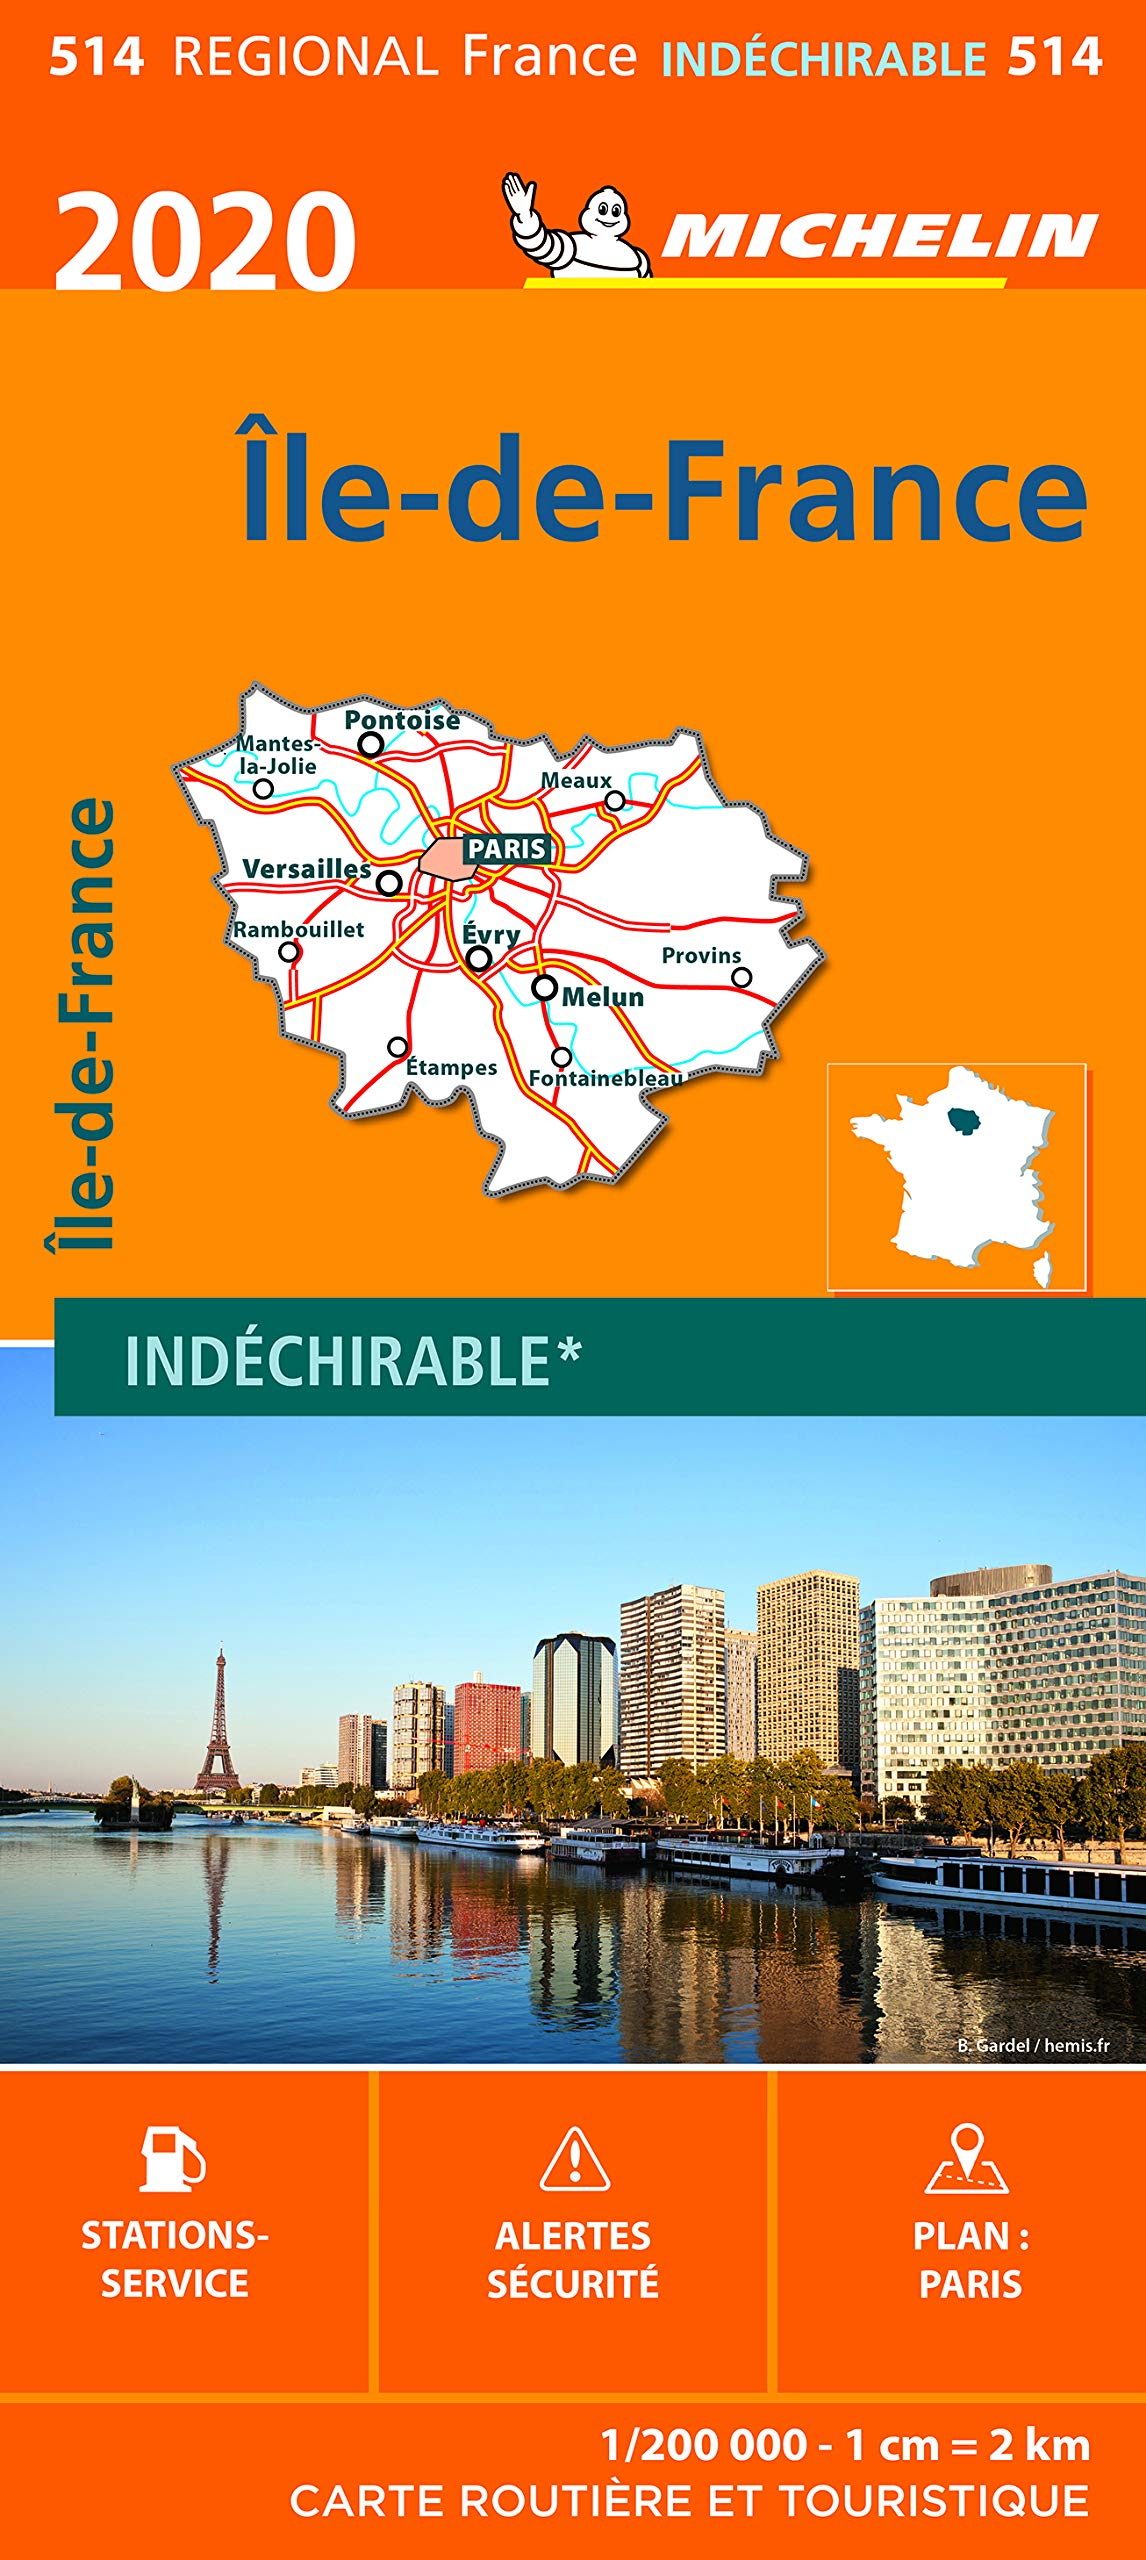 carte routiere france 2020 Amazon.in: Buy Ile de France 2020 Book Online at Low Prices in